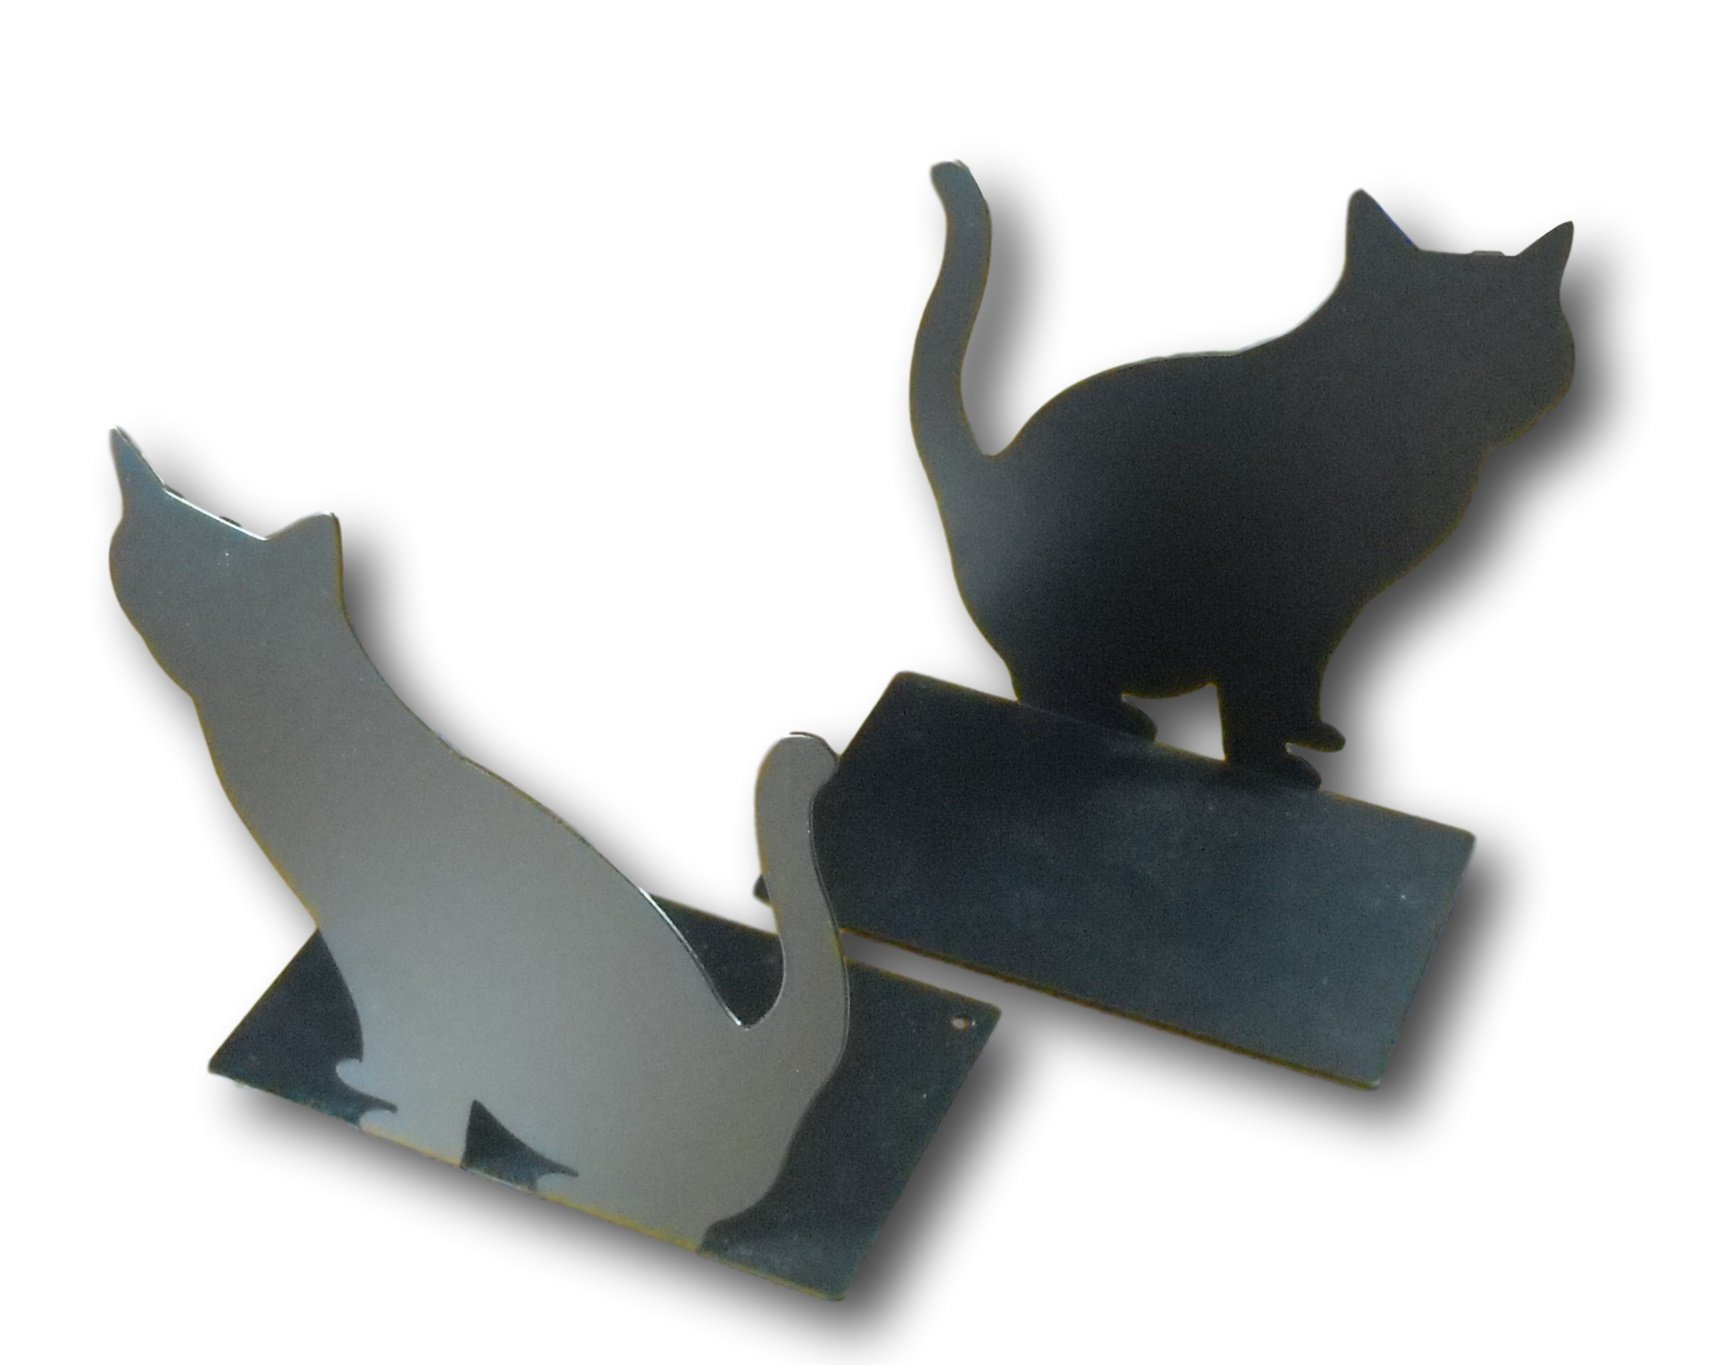 Cute Black Cat Kitty Mini Bookends Metal Book Ends Supports for Books Movies Dvds Video Games 3.93 x 4.33 inch (1 Pair)